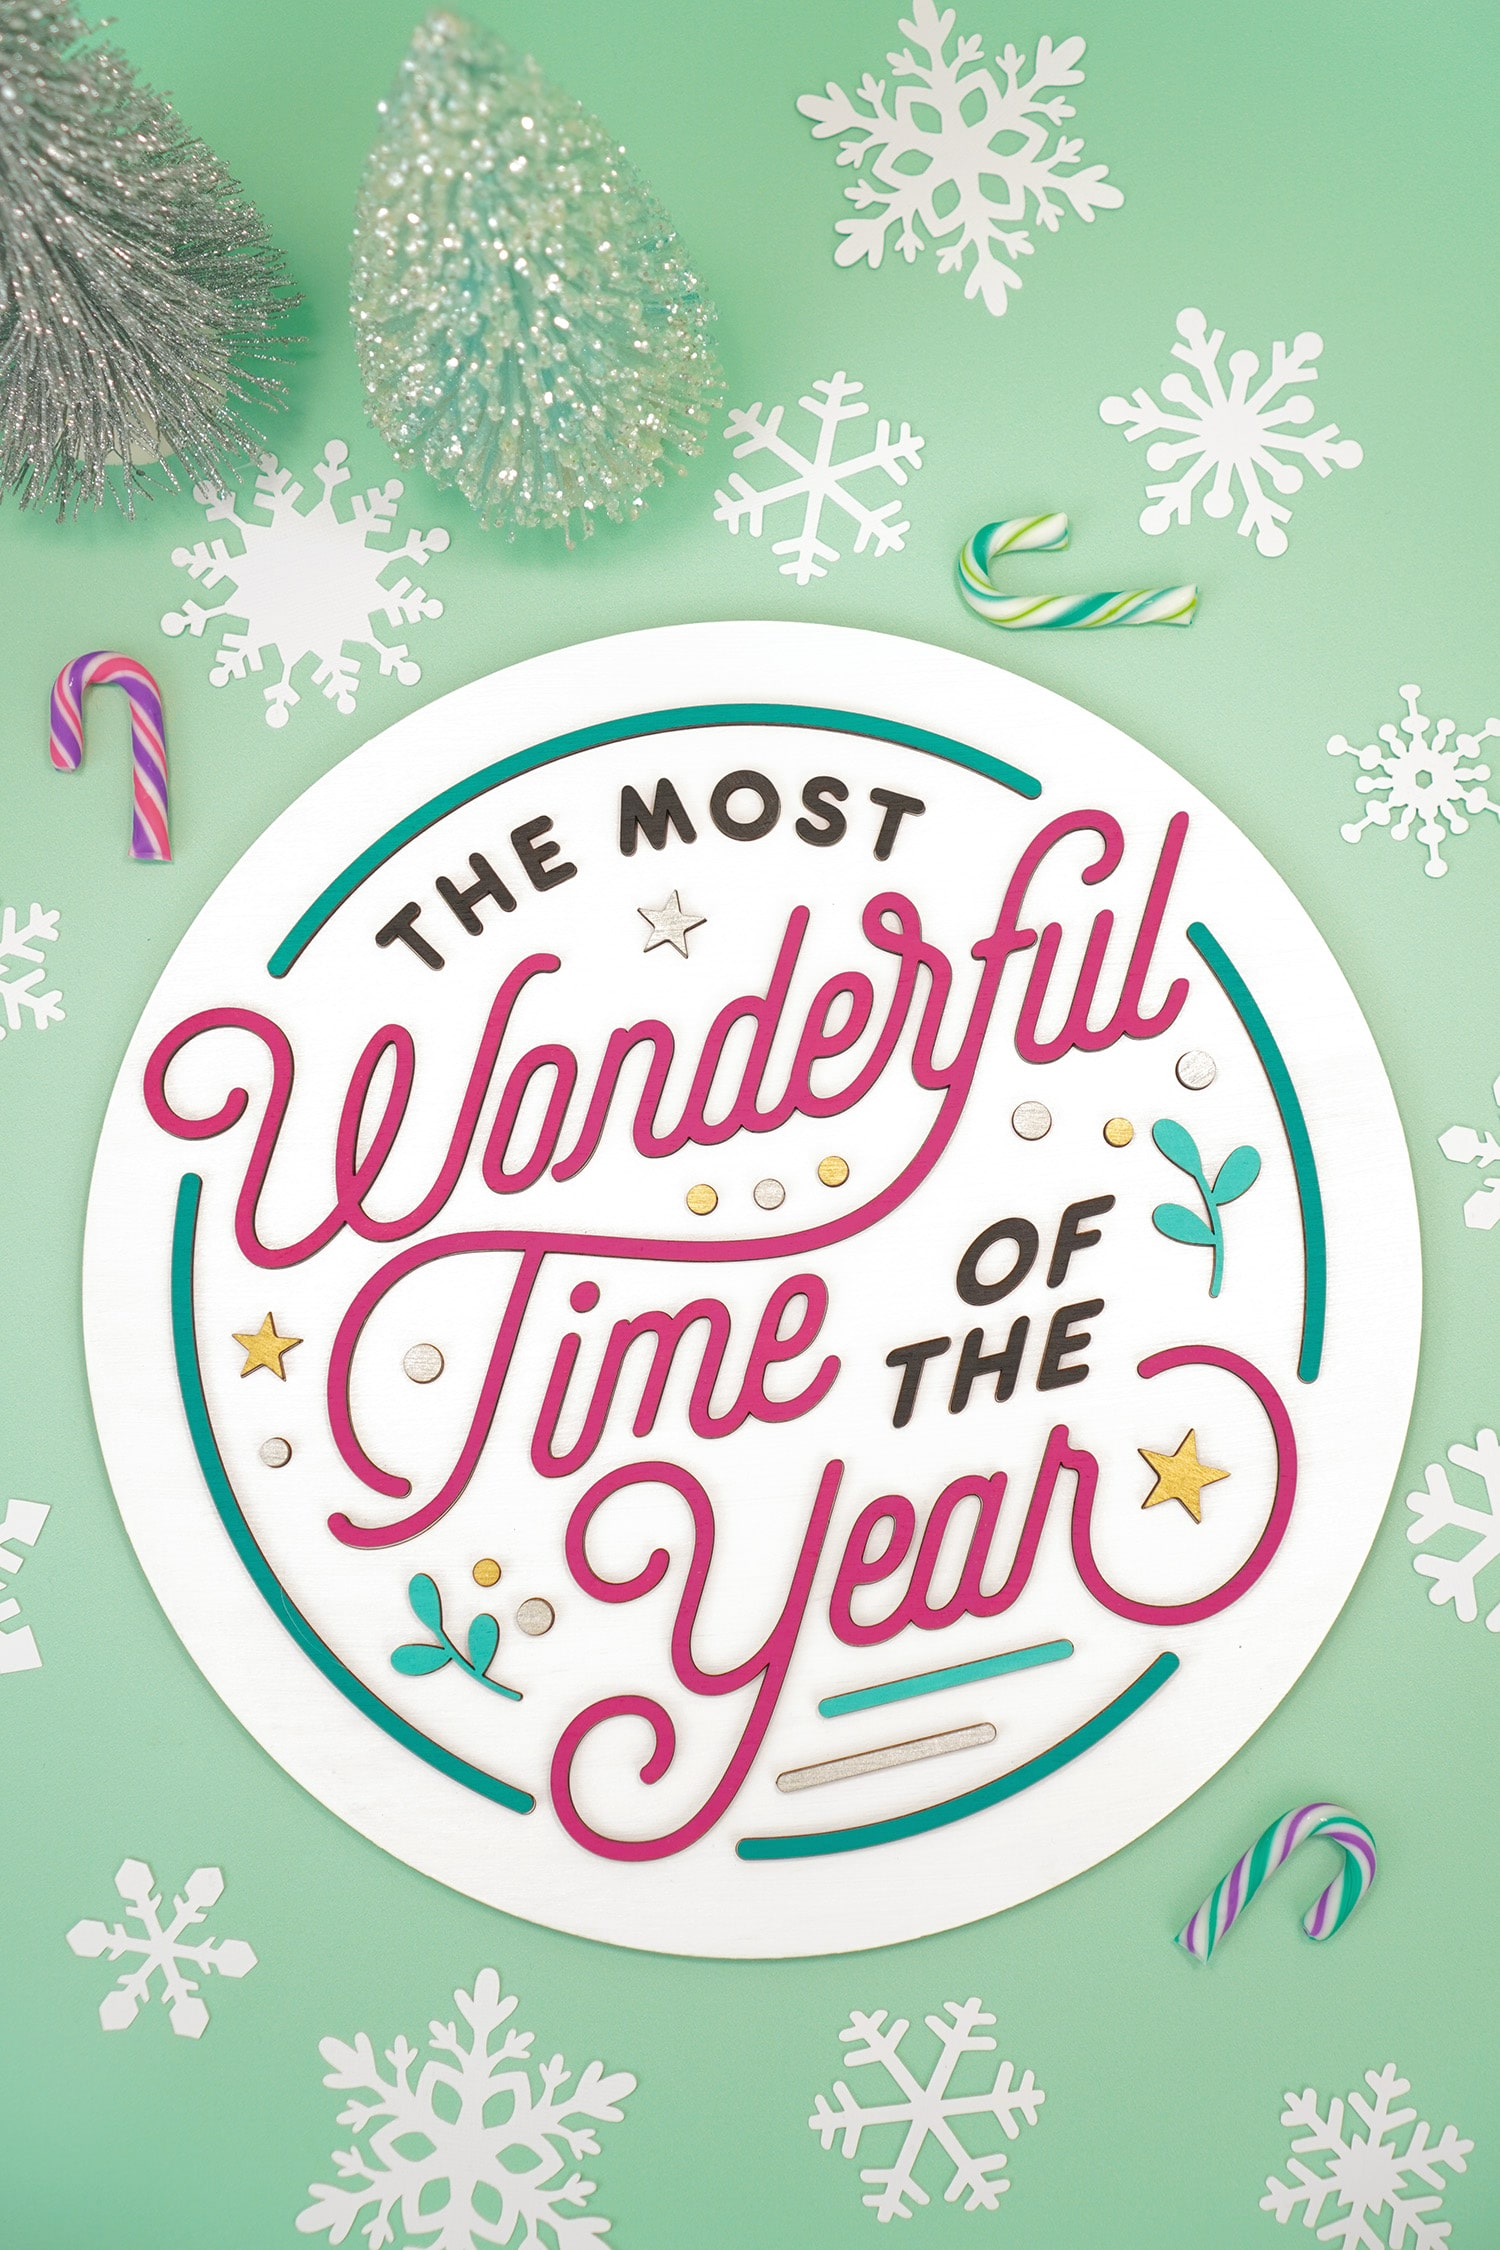 """Round layered 3D laser cut wood sign """"The Most Wonderful Time of the Year"""" on mint green background with colorful candy canes, white paper snowflakes, and pastel glitter bottle brush trees"""